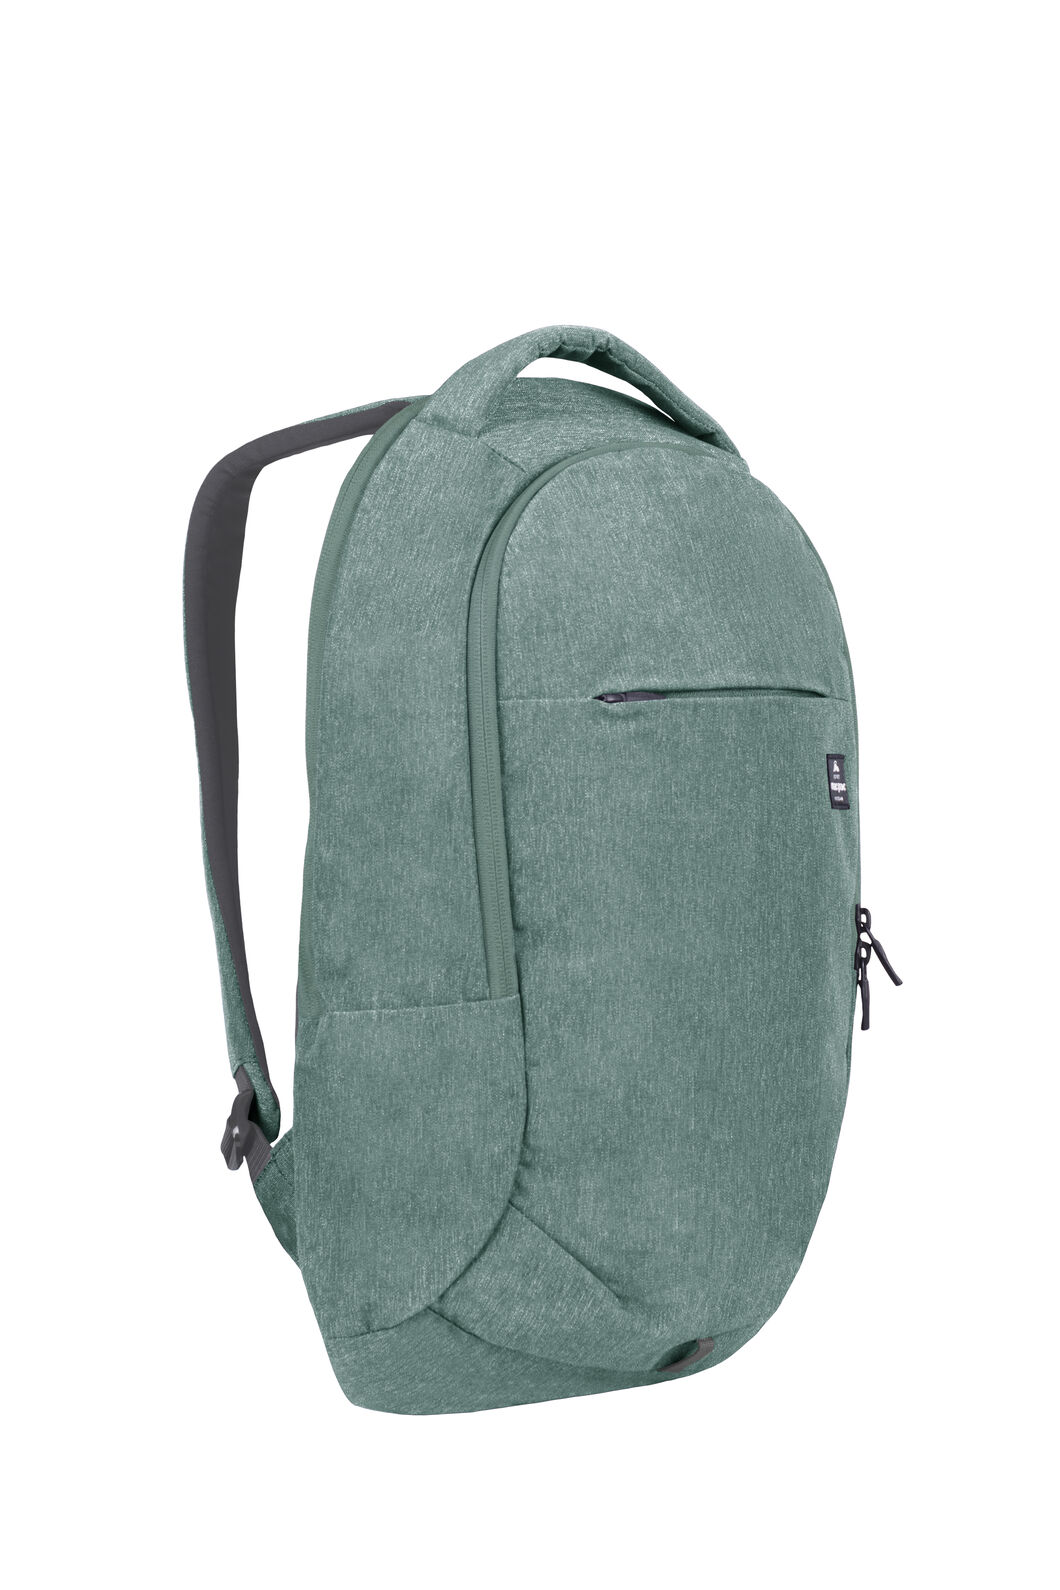 Macpac Slim 15L Backpack, Stormy Sea, hi-res